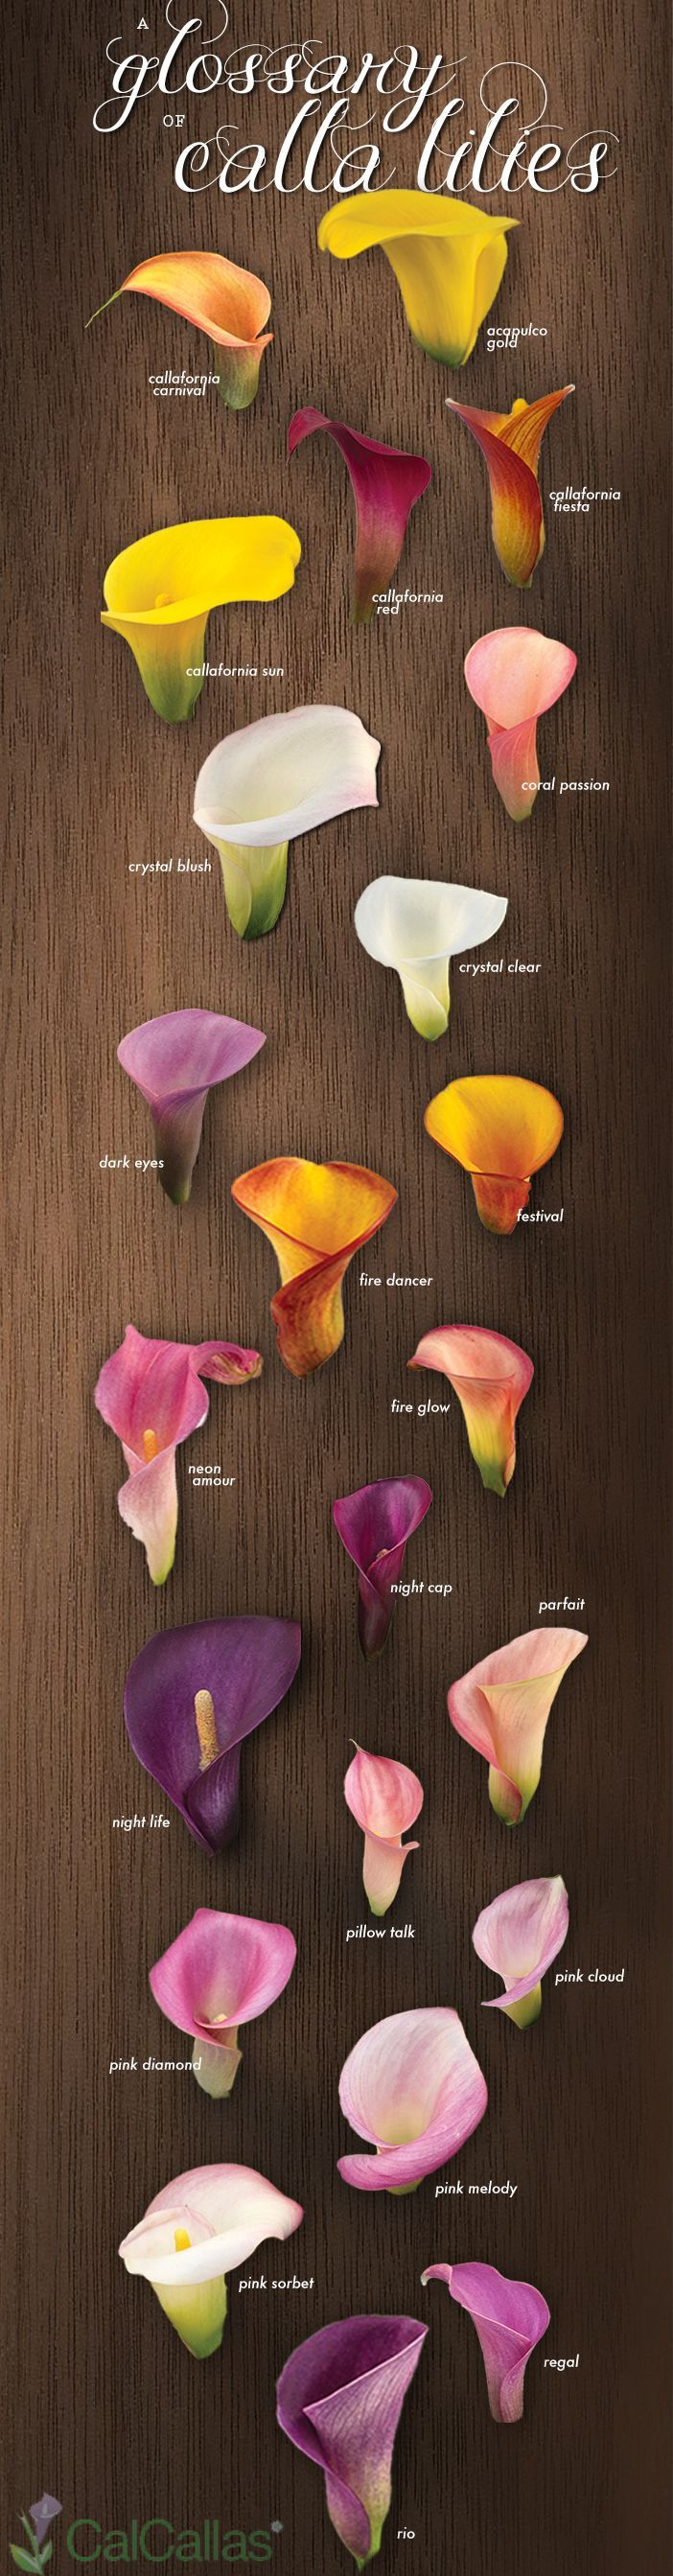 Calla lily wedding packages start at $239 for 100 stems.   Shop calla lilies today! ->  http://www.calcallas.com/shop/calla-lily-wedding-package-100/